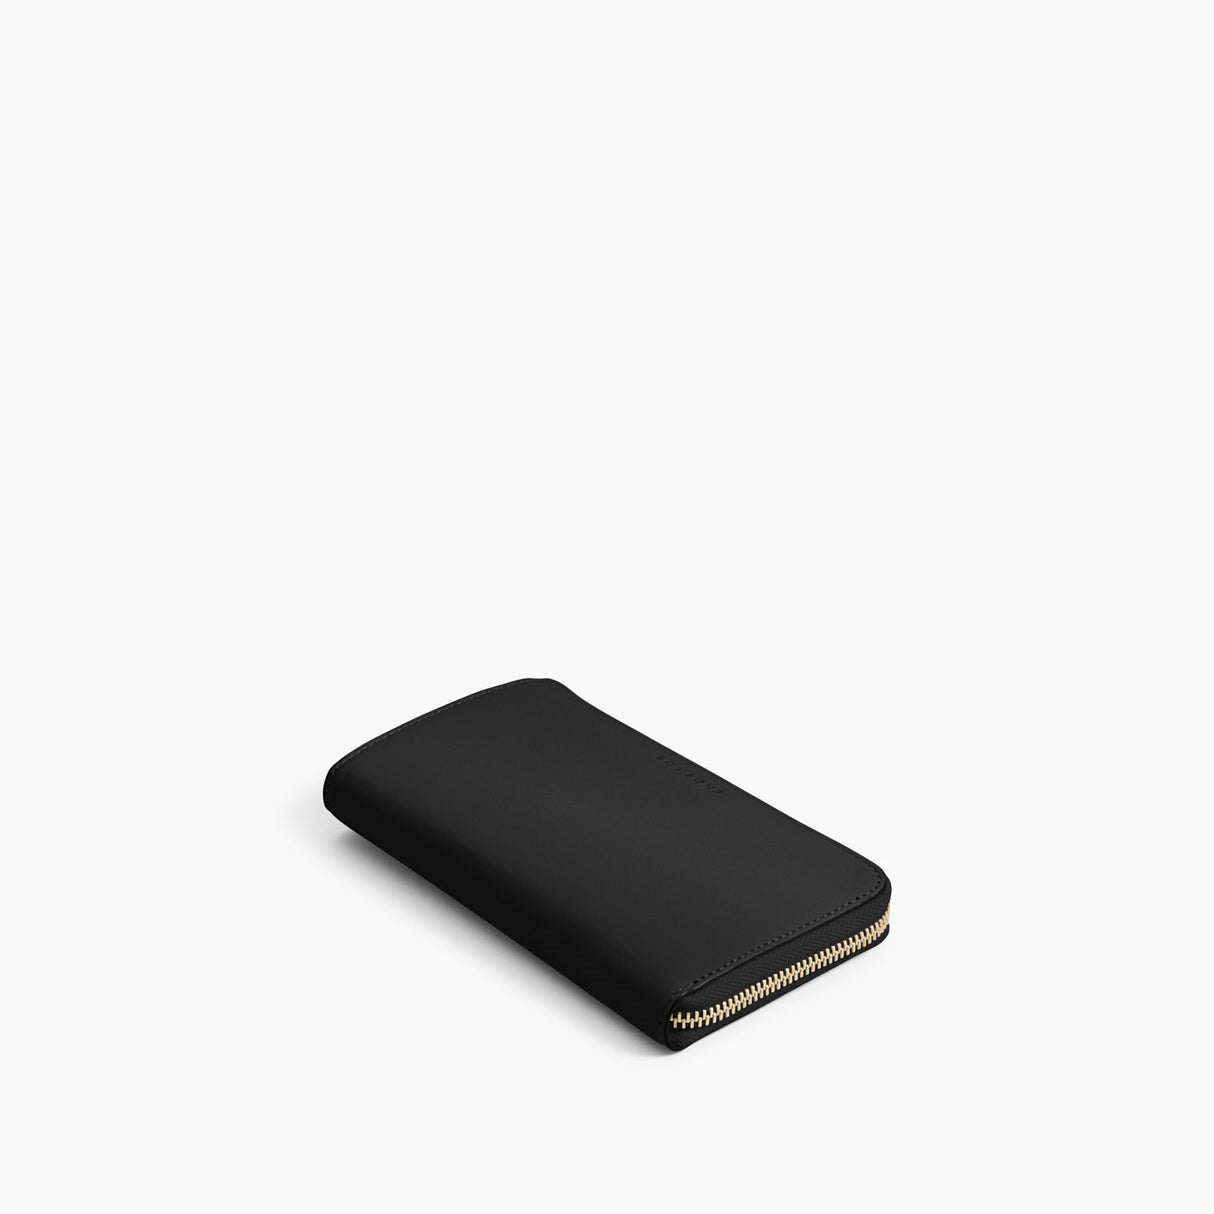 Front - The Leather Wallet - Nappa Leather - Black / Gold / Grey - Small Accessory - Lo & Sons